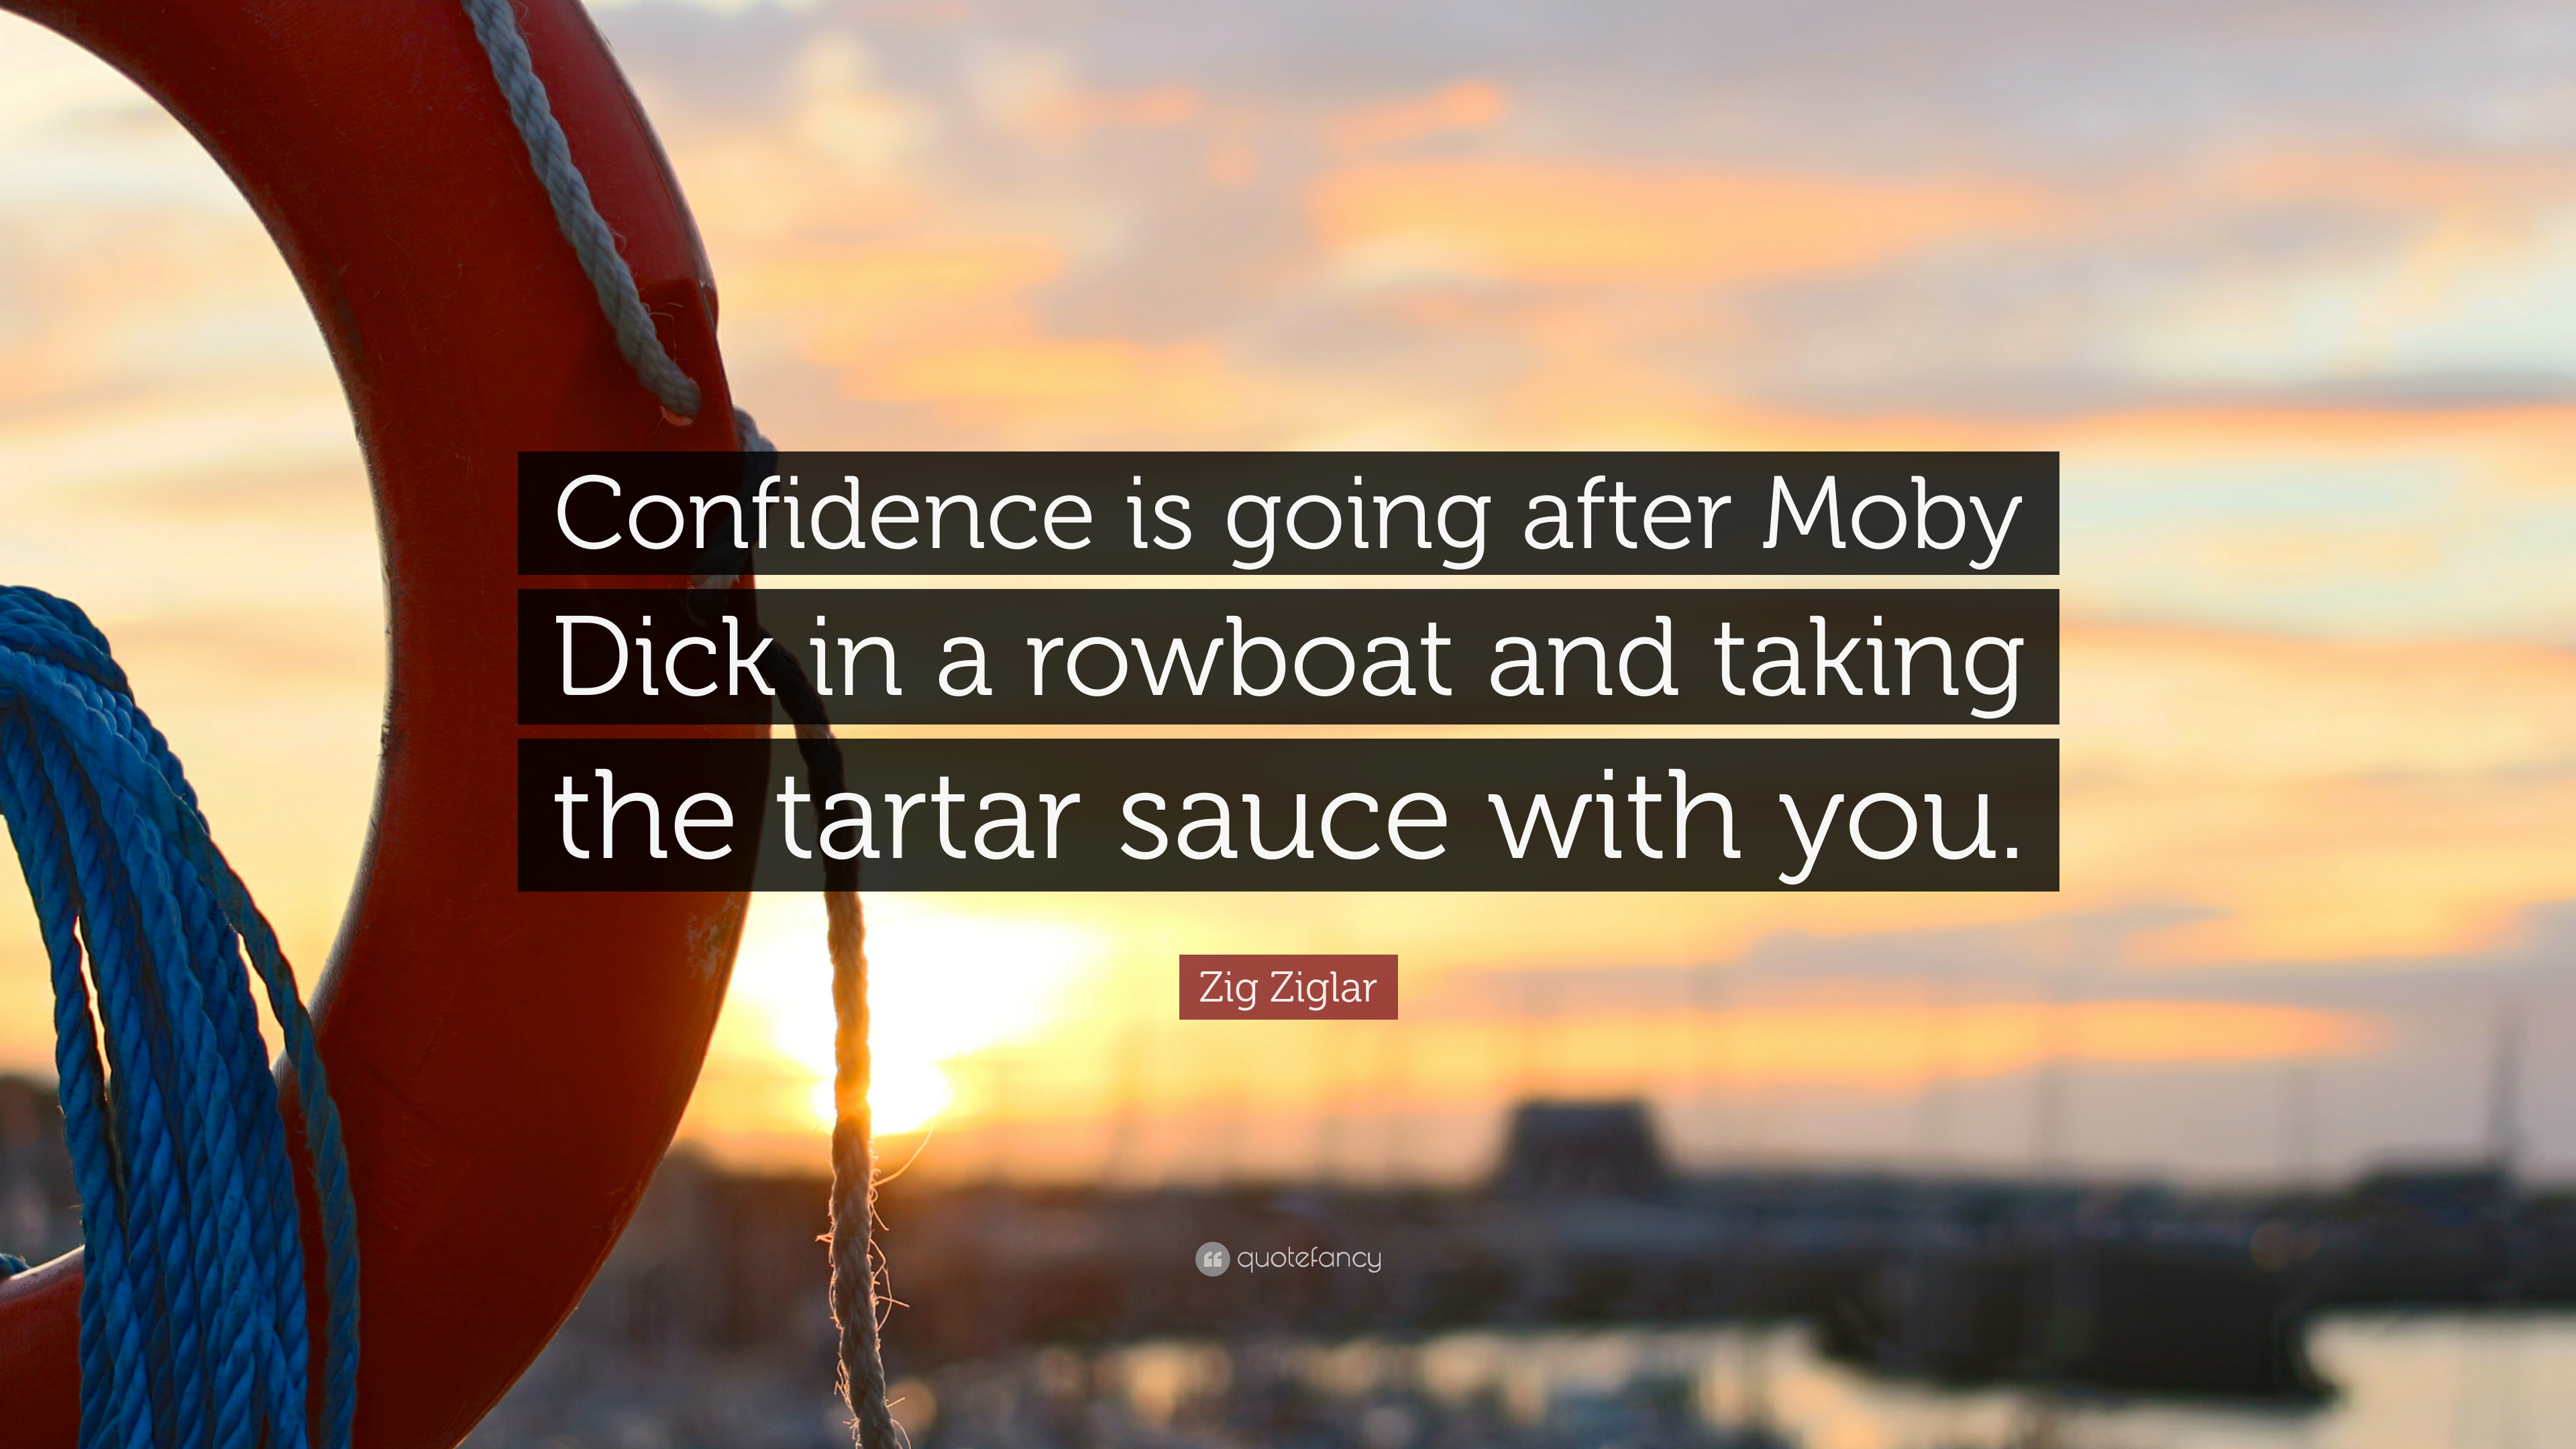 Want fleshlight confidence is going after moby dick that guy, but